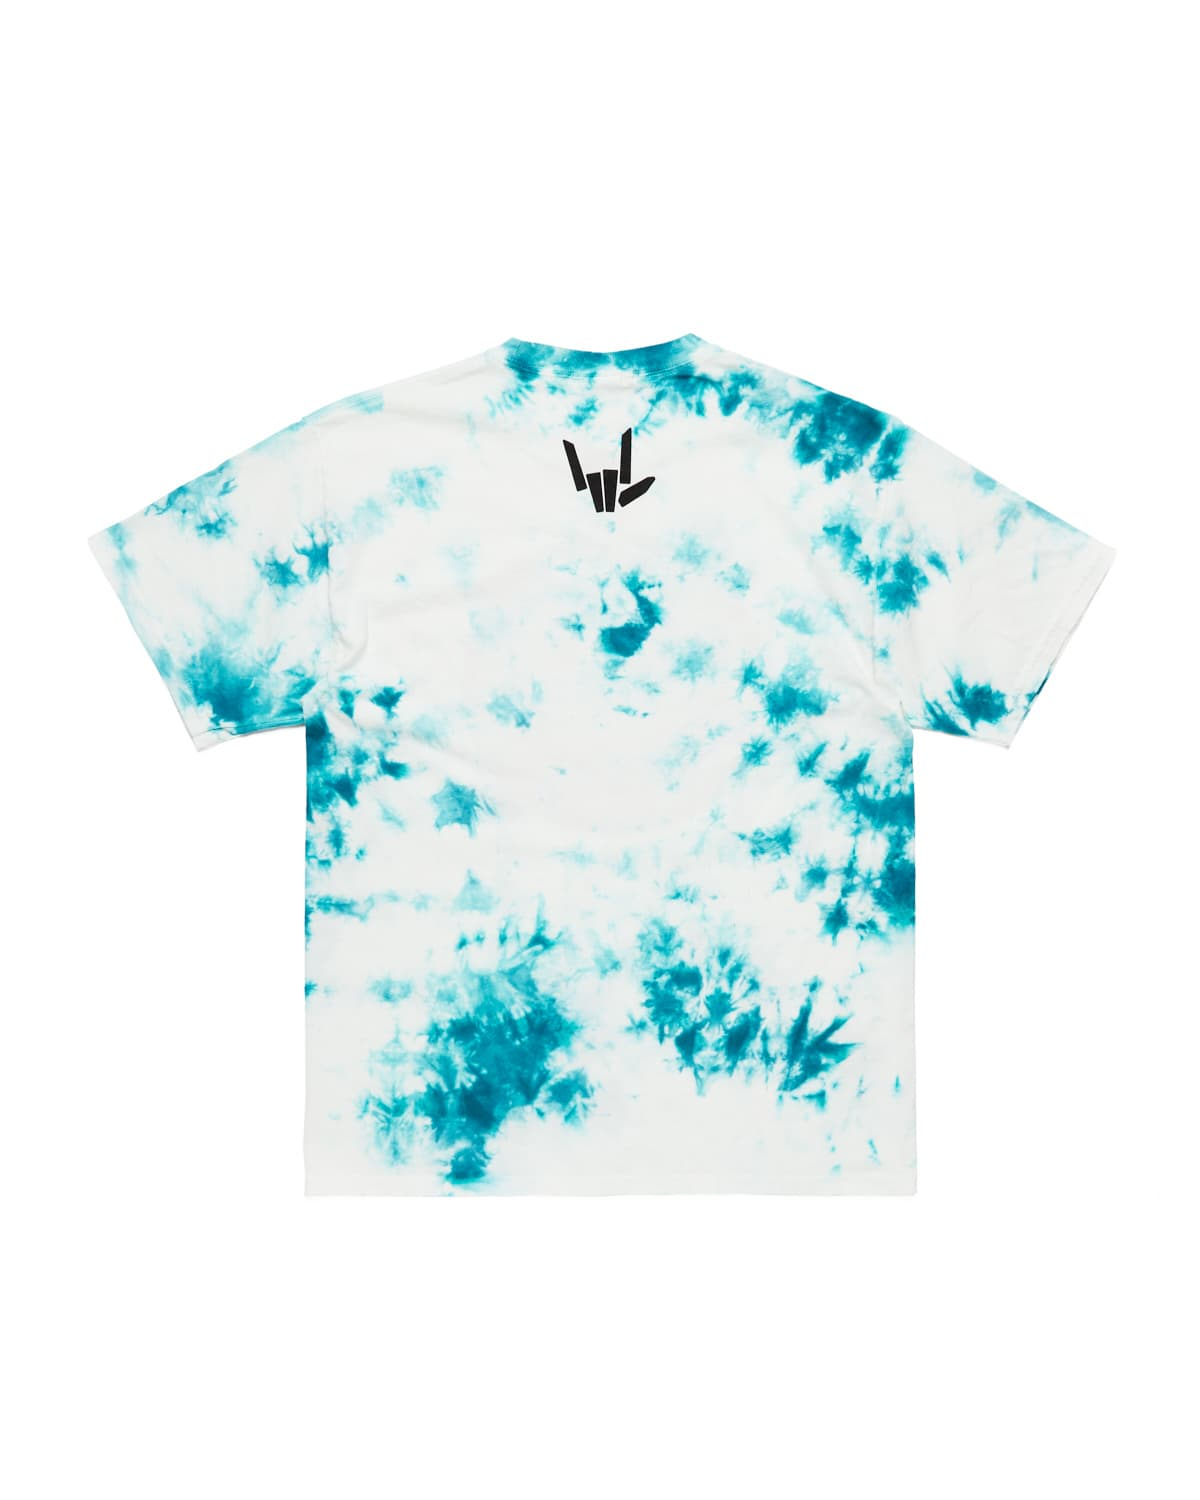 'Share A Smile' Crystal Wash Tee